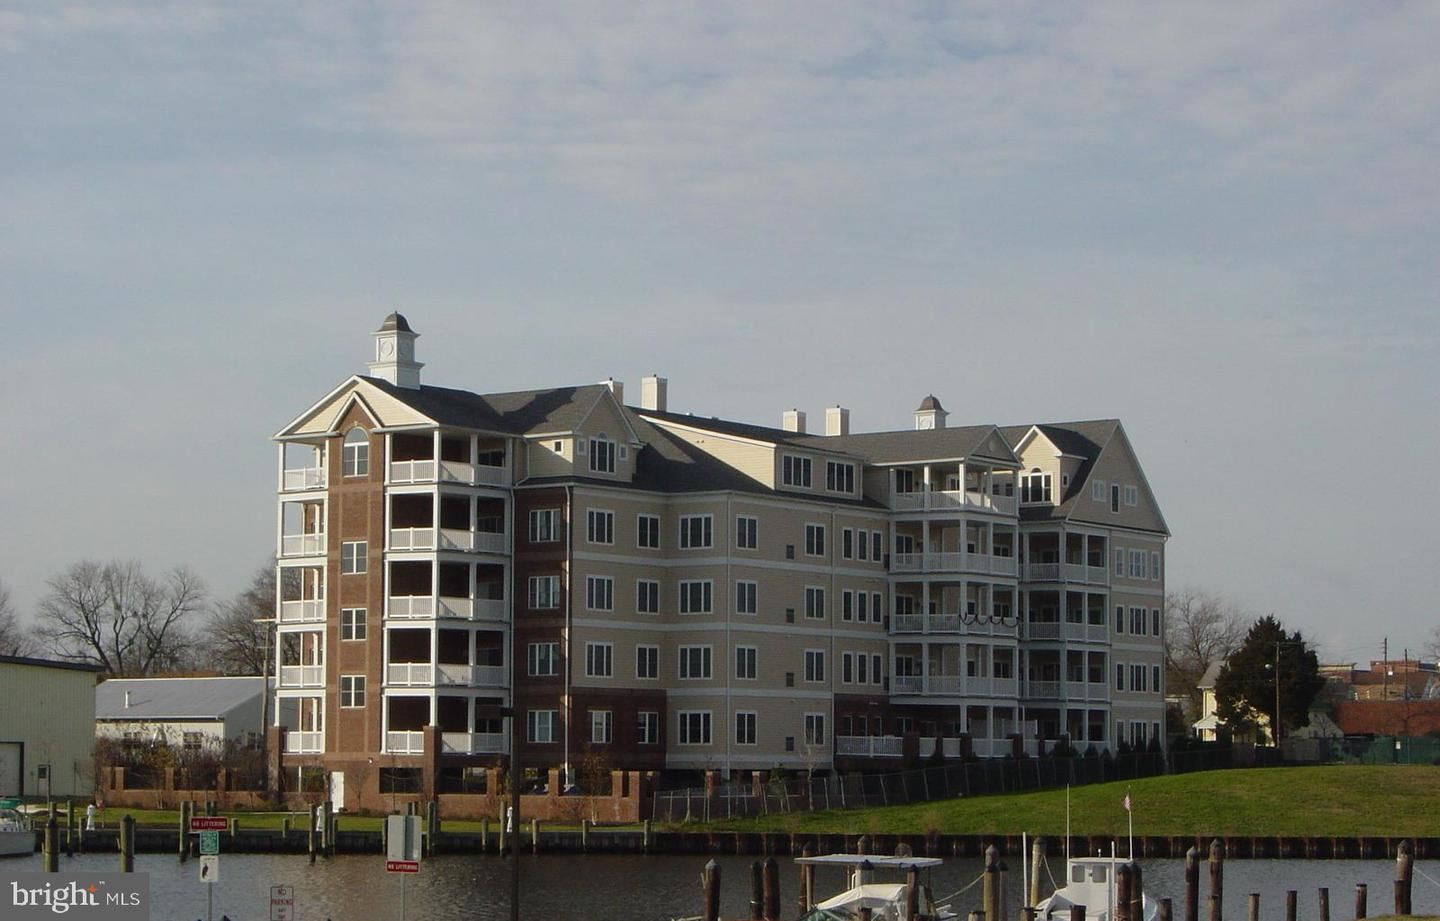 Photo for 301 MUIR ST #406, CAMBRIDGE, MD 21613 (MLS # MDDO124668)